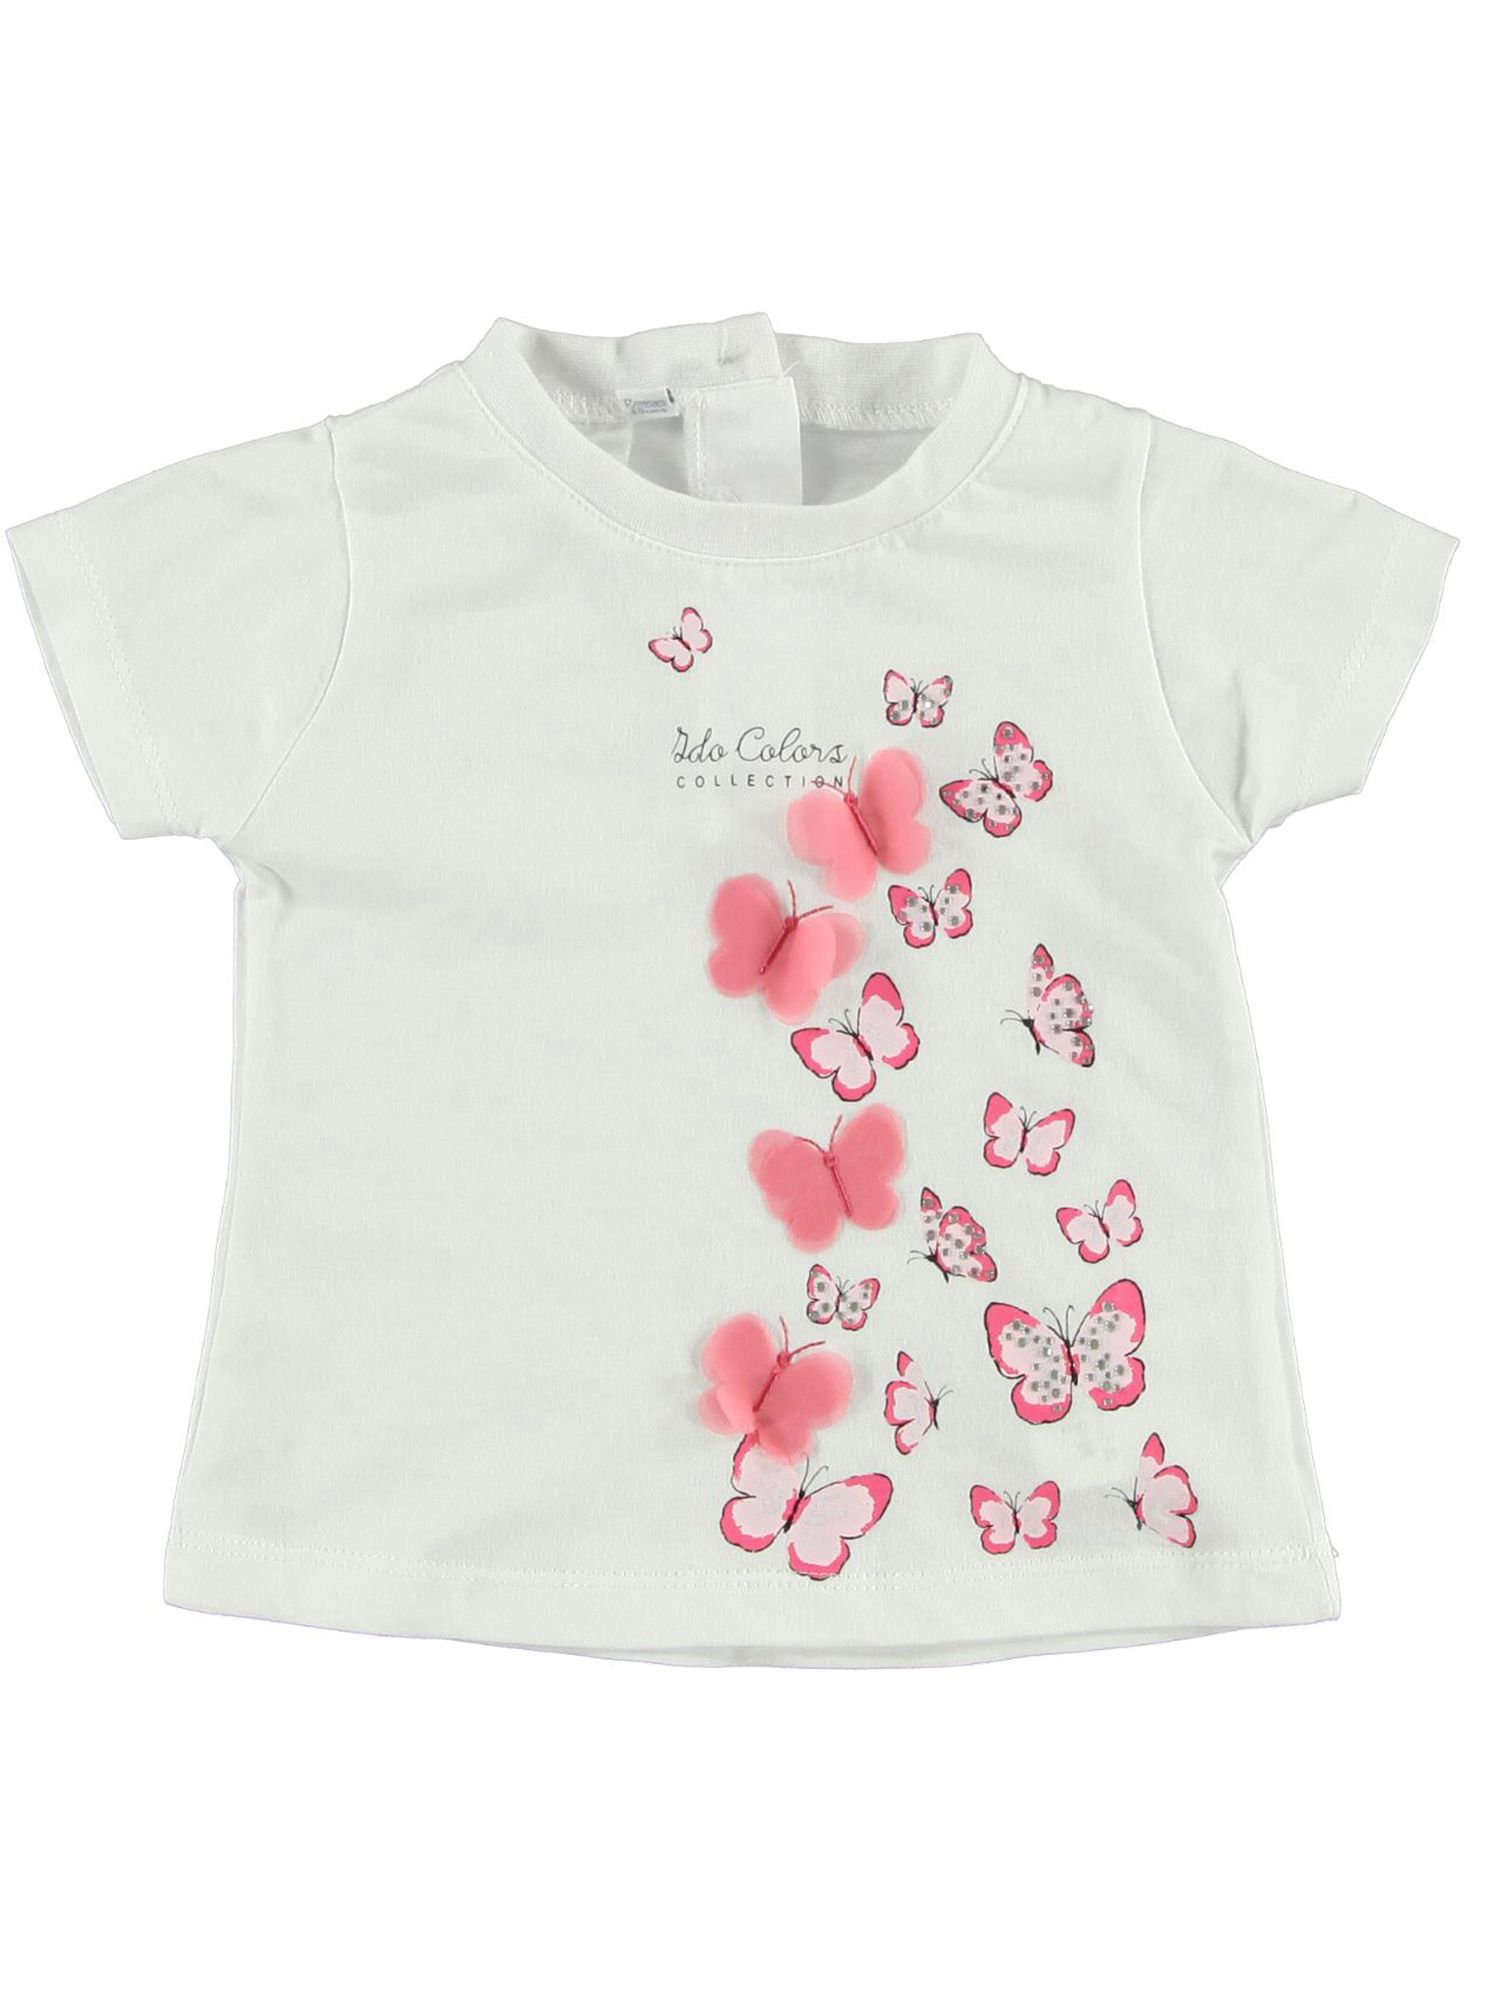 Girls butterfly printed t-shirt